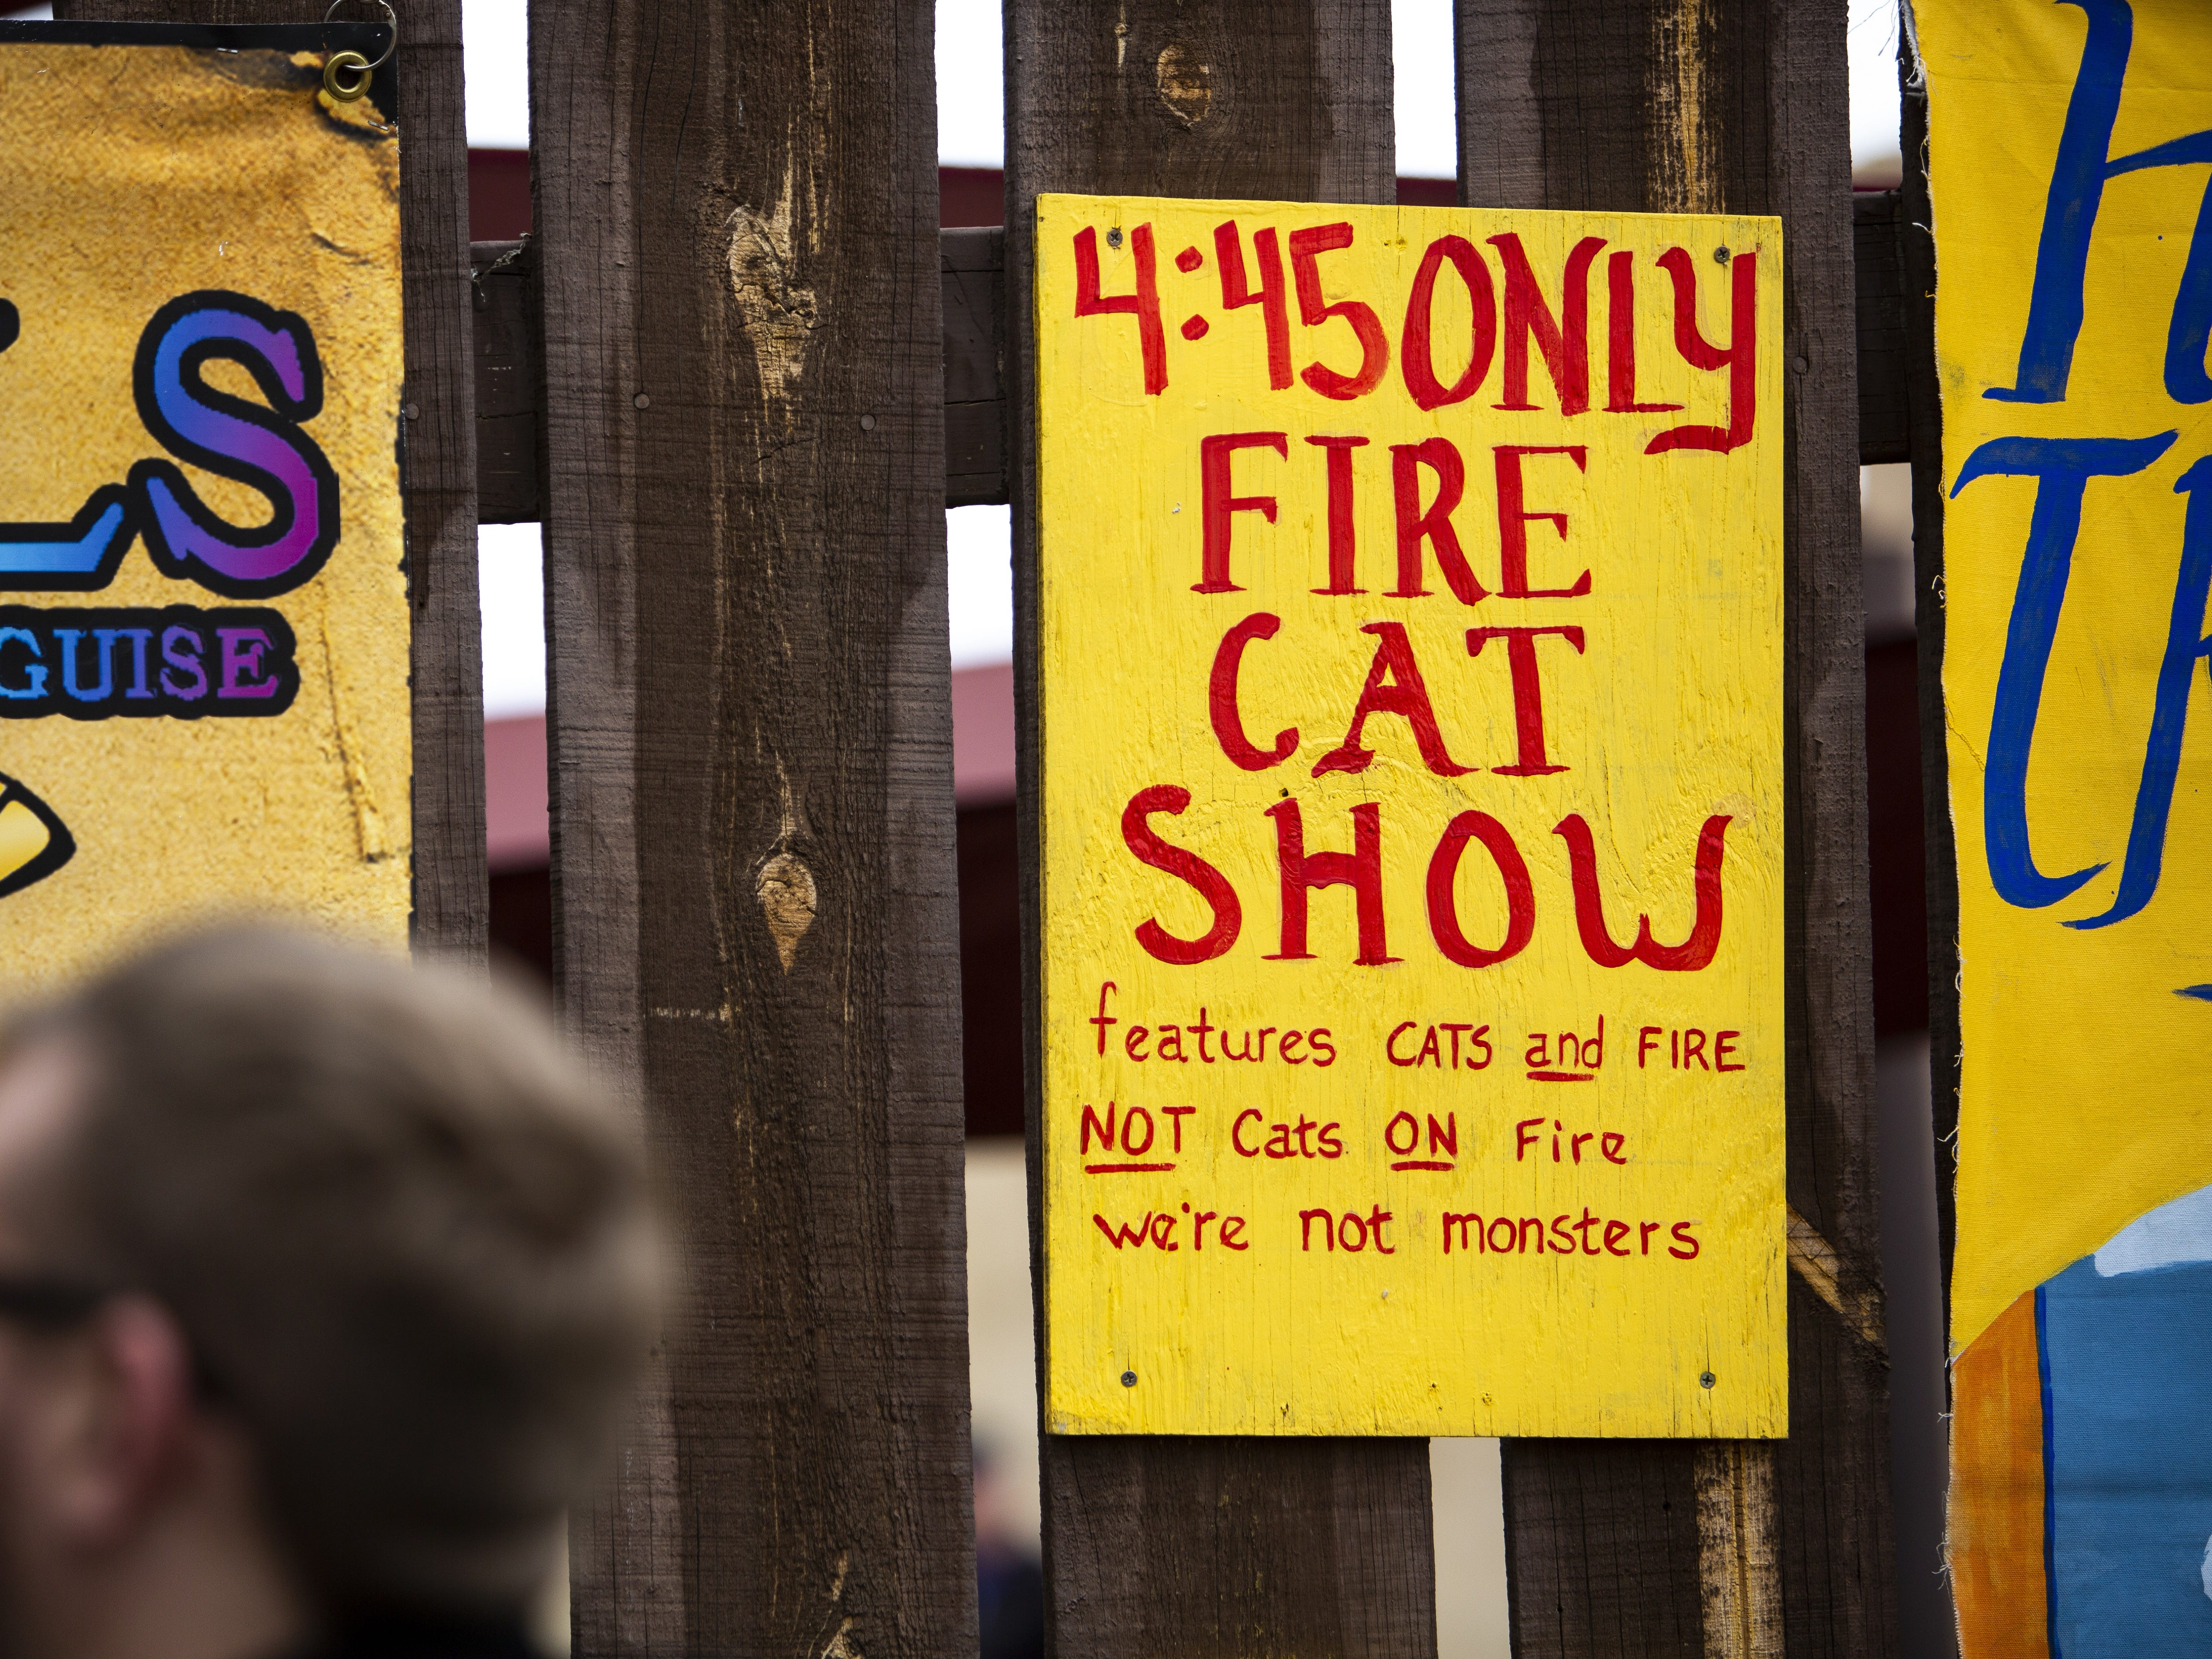 A sign announces a fire cat show at the Arizona Renaissance Festival 2019 on Feb. 9, 2019 in Gold Canyon, Ariz.